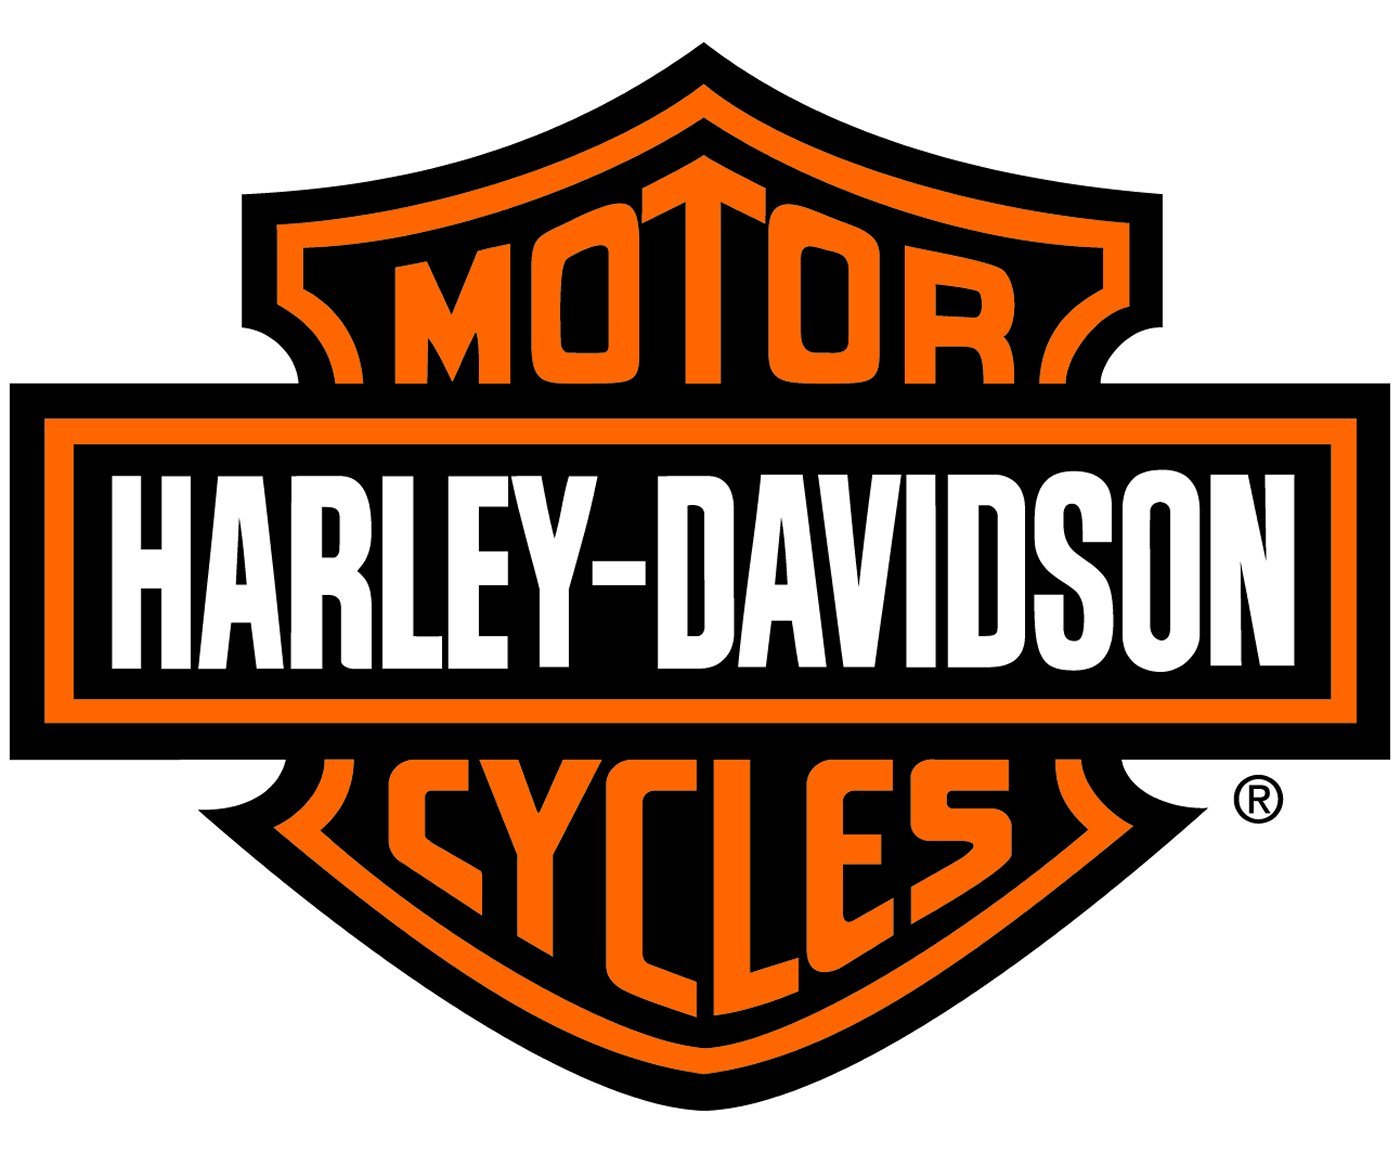 Bien-aimé The Harley-Davidson Story (with images) · OmarKattan · Storify WH83